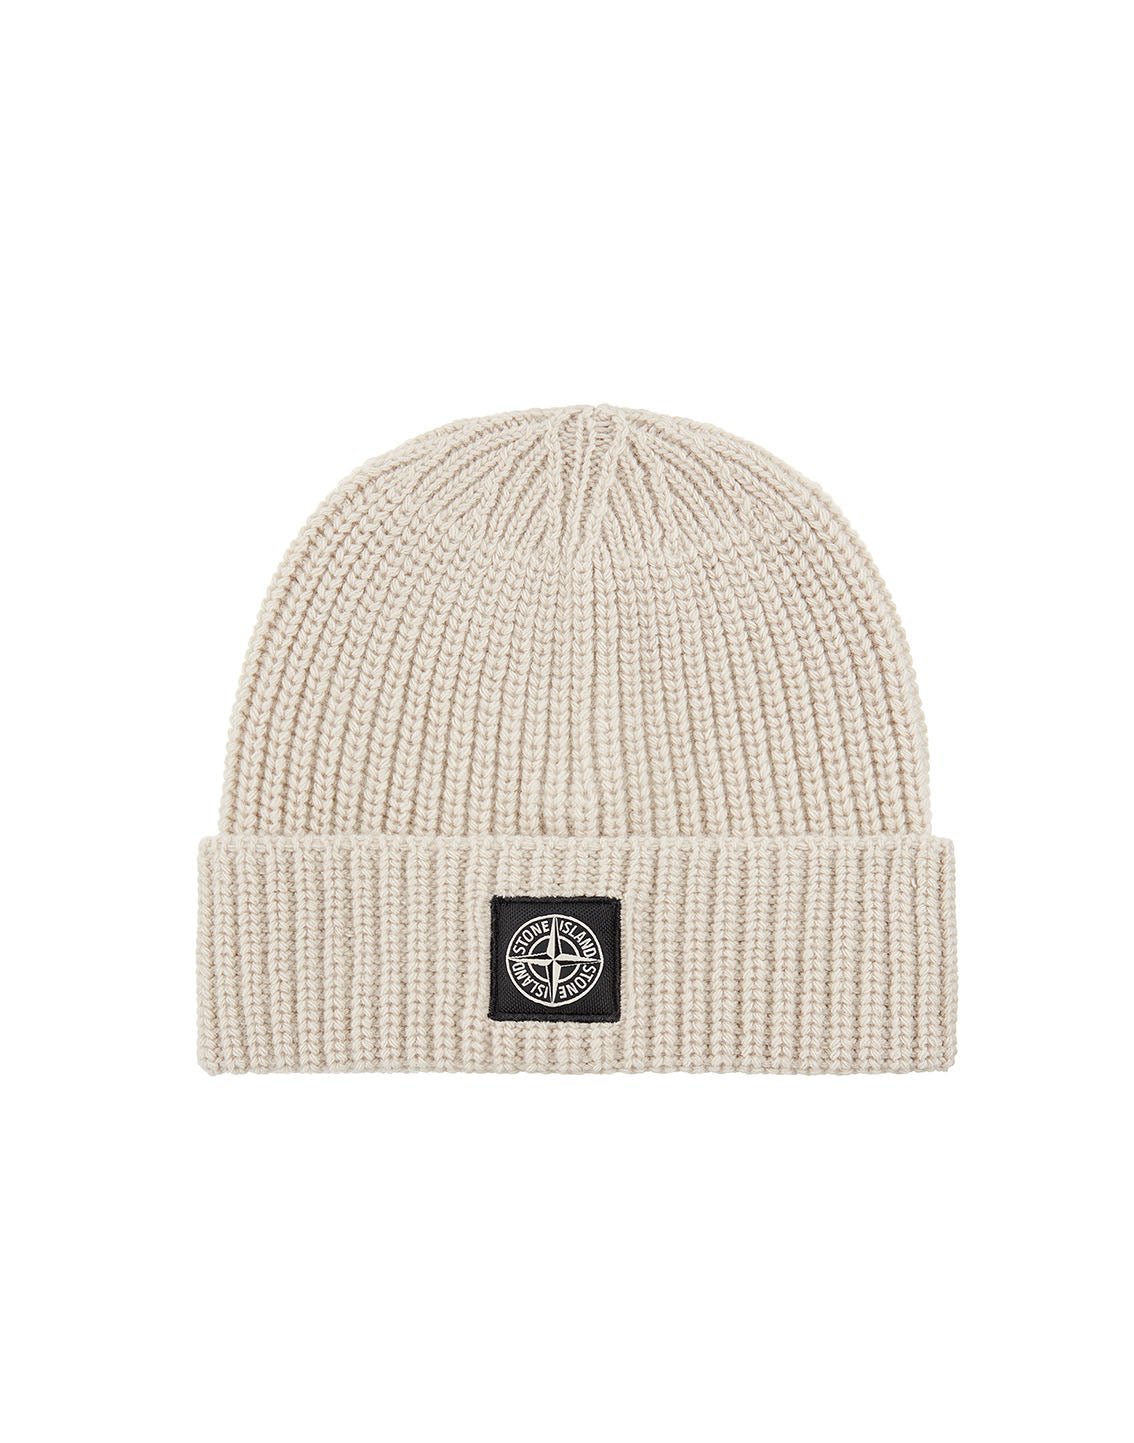 N10B5 Ribbed Wool Hat in Natural Beige